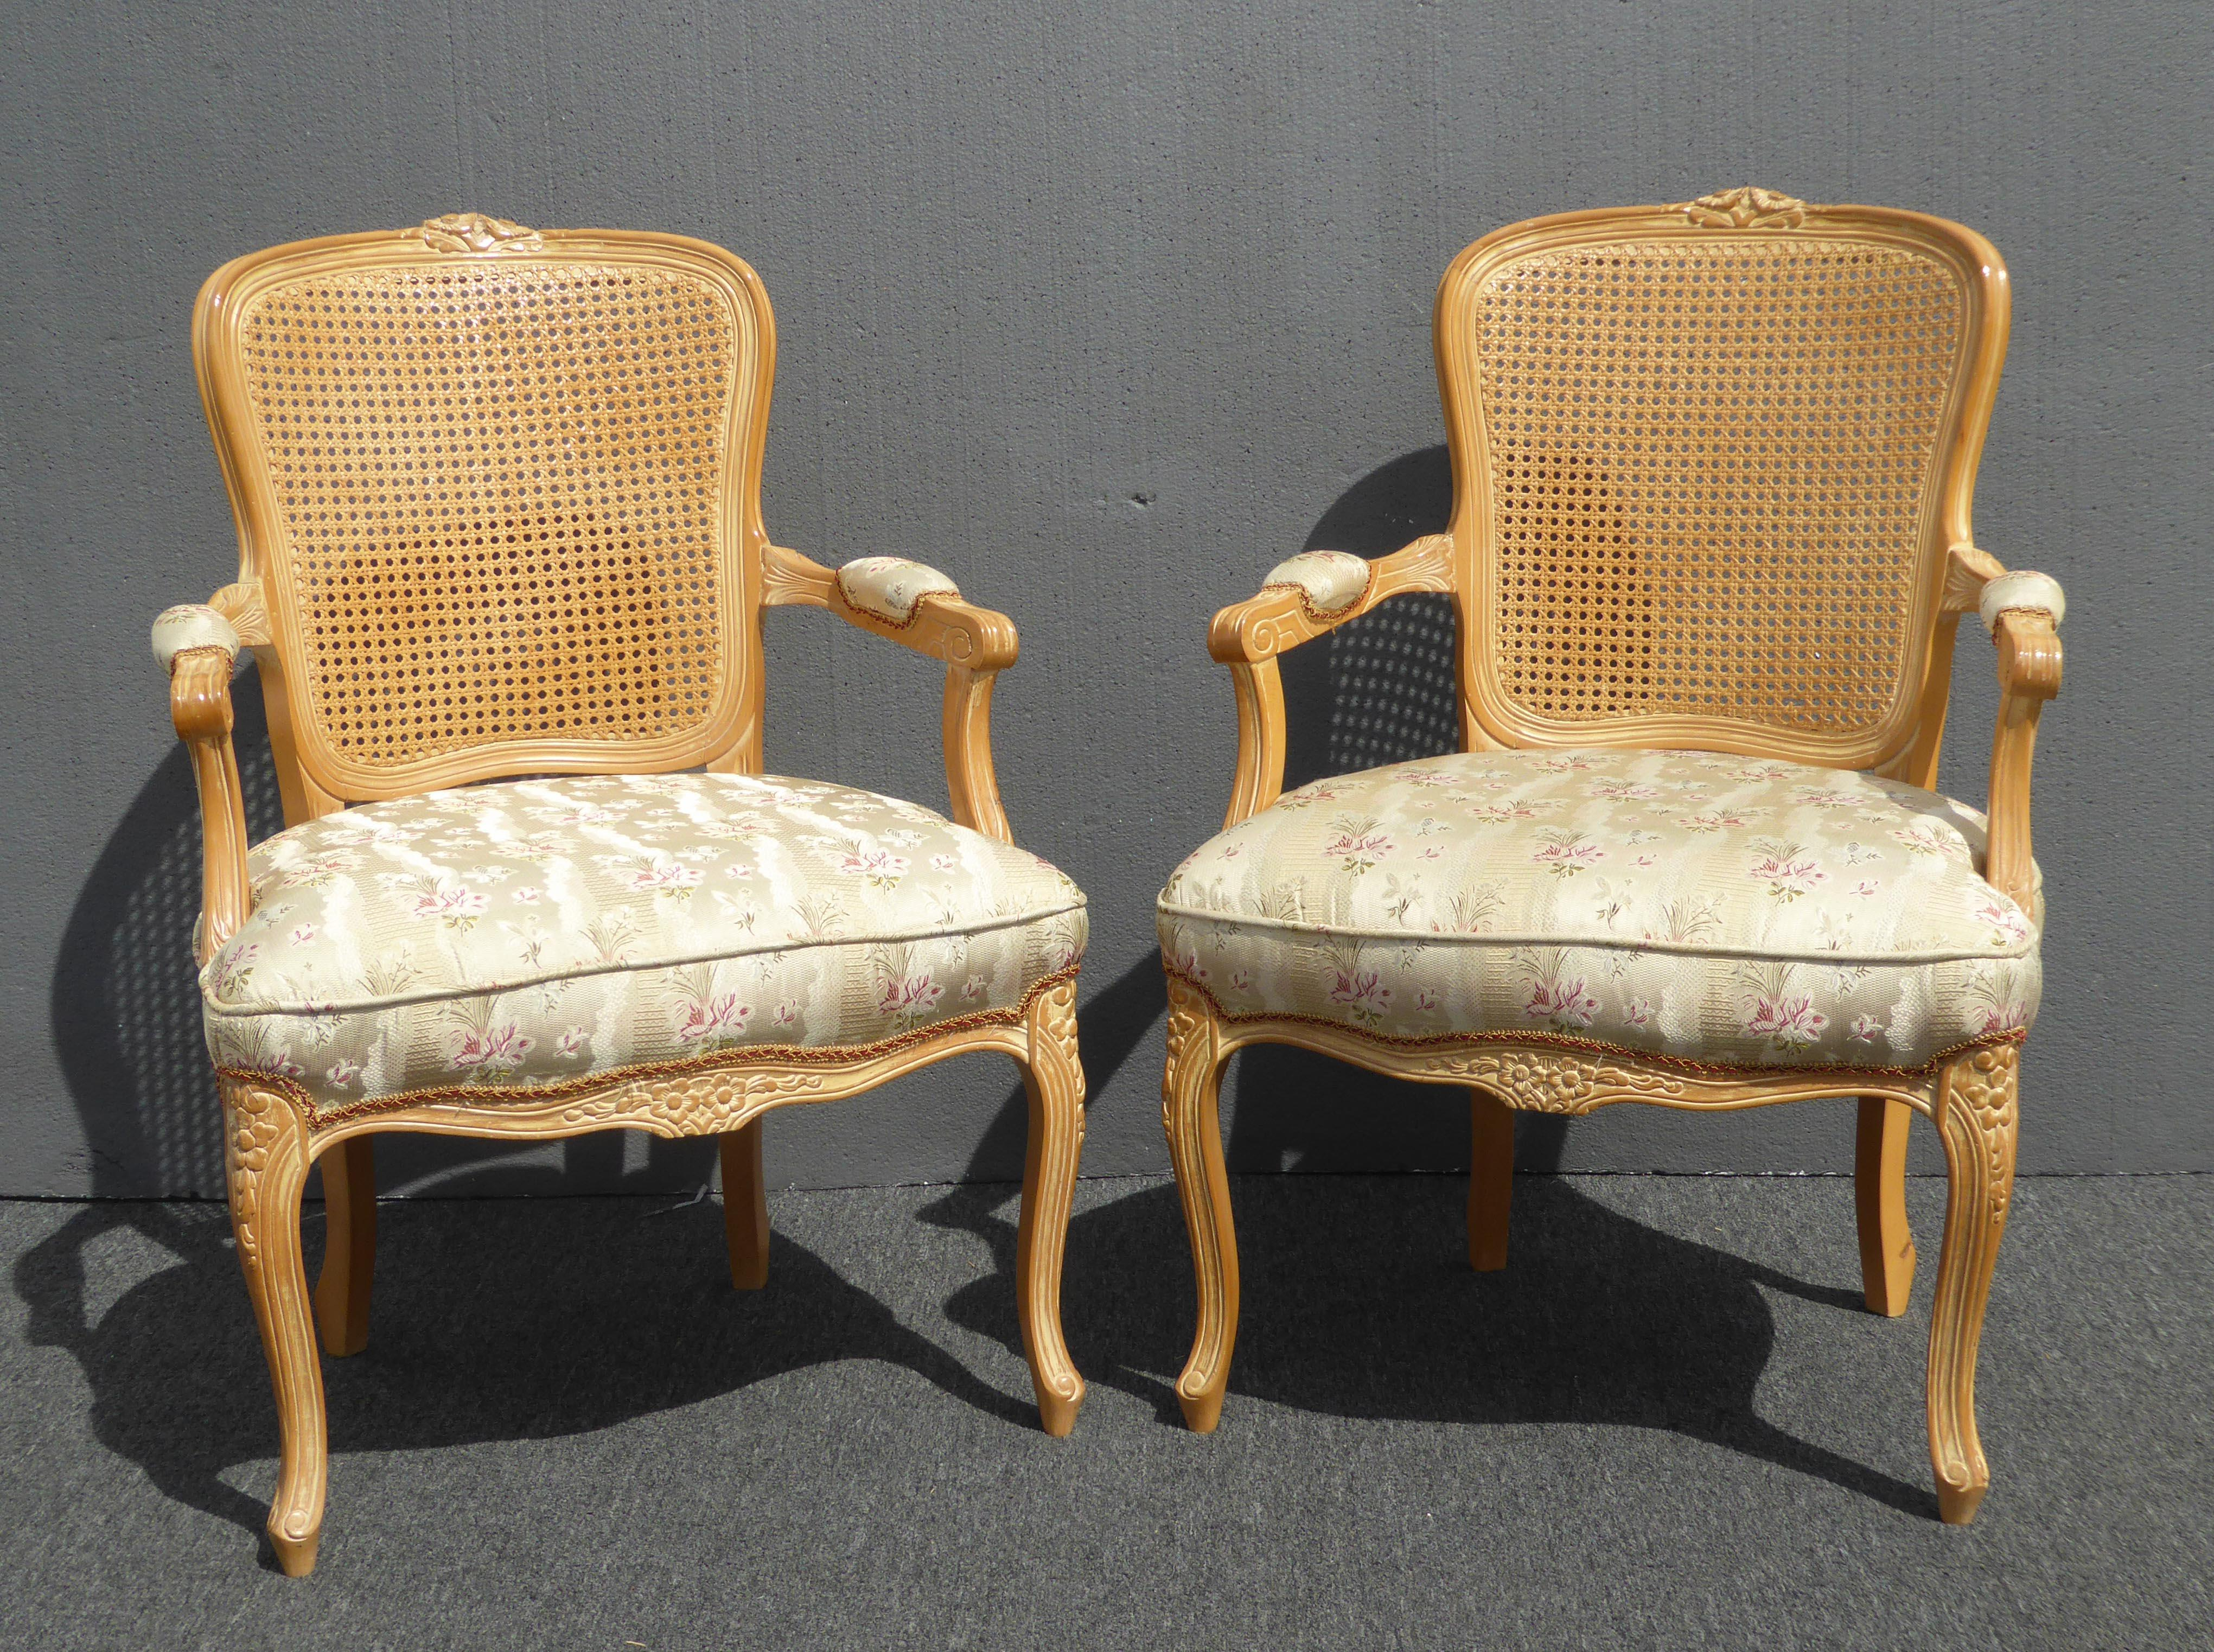 Vintage French Provincial Cane Off White Accent Chairs W Floral Print   A  Pair   Image